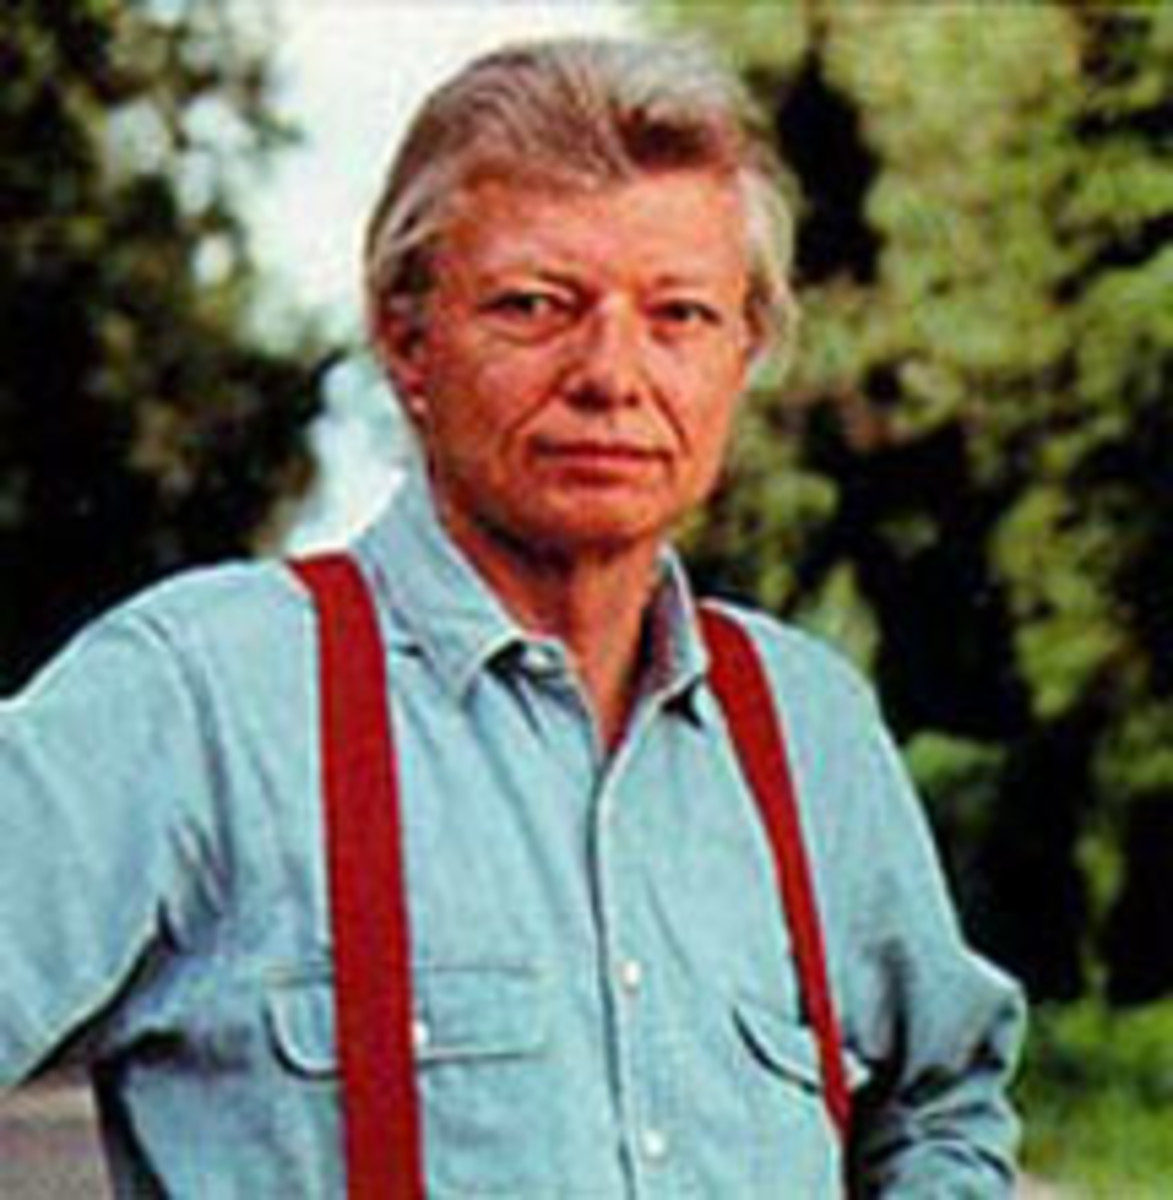 Do you see a resemblance between Robert Waller, author of the book Bridges of Madison County and Robert Kincaid, the main character?